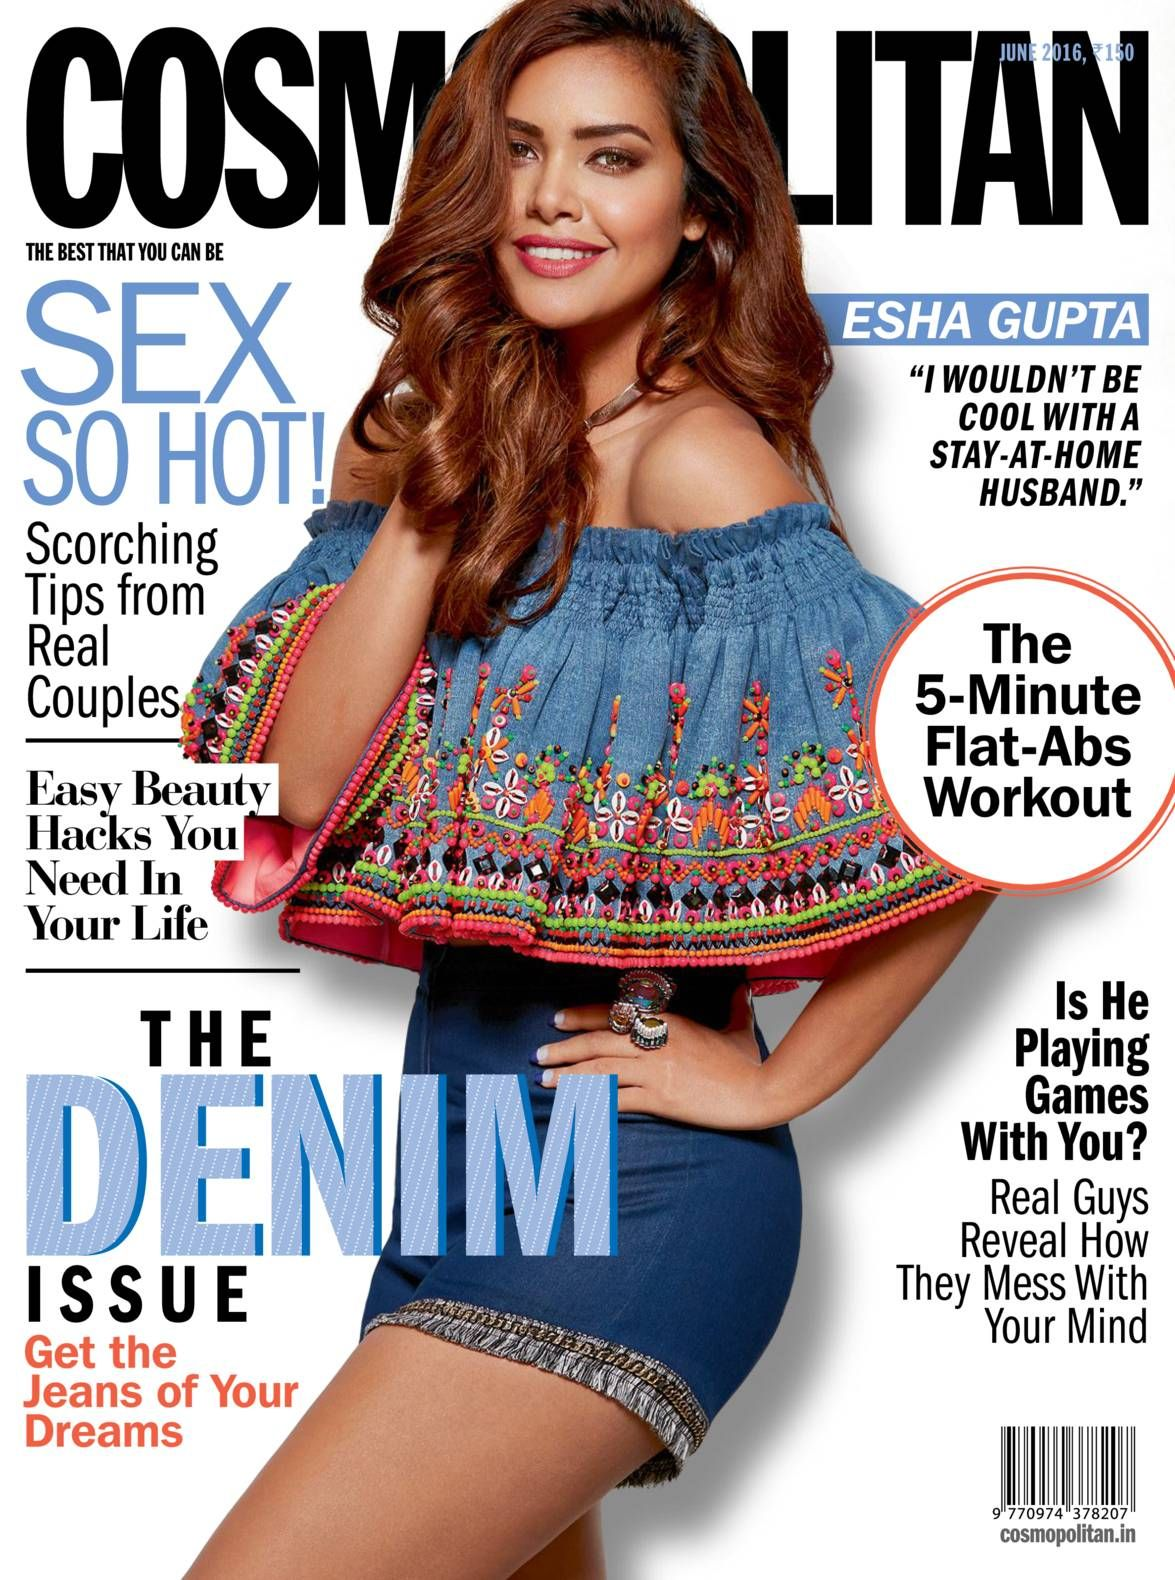 Read Cosmopolitan India - June 2016 digital edition on your iPad, iPhone, Android Devices & web from Magzter Digital Newsstand